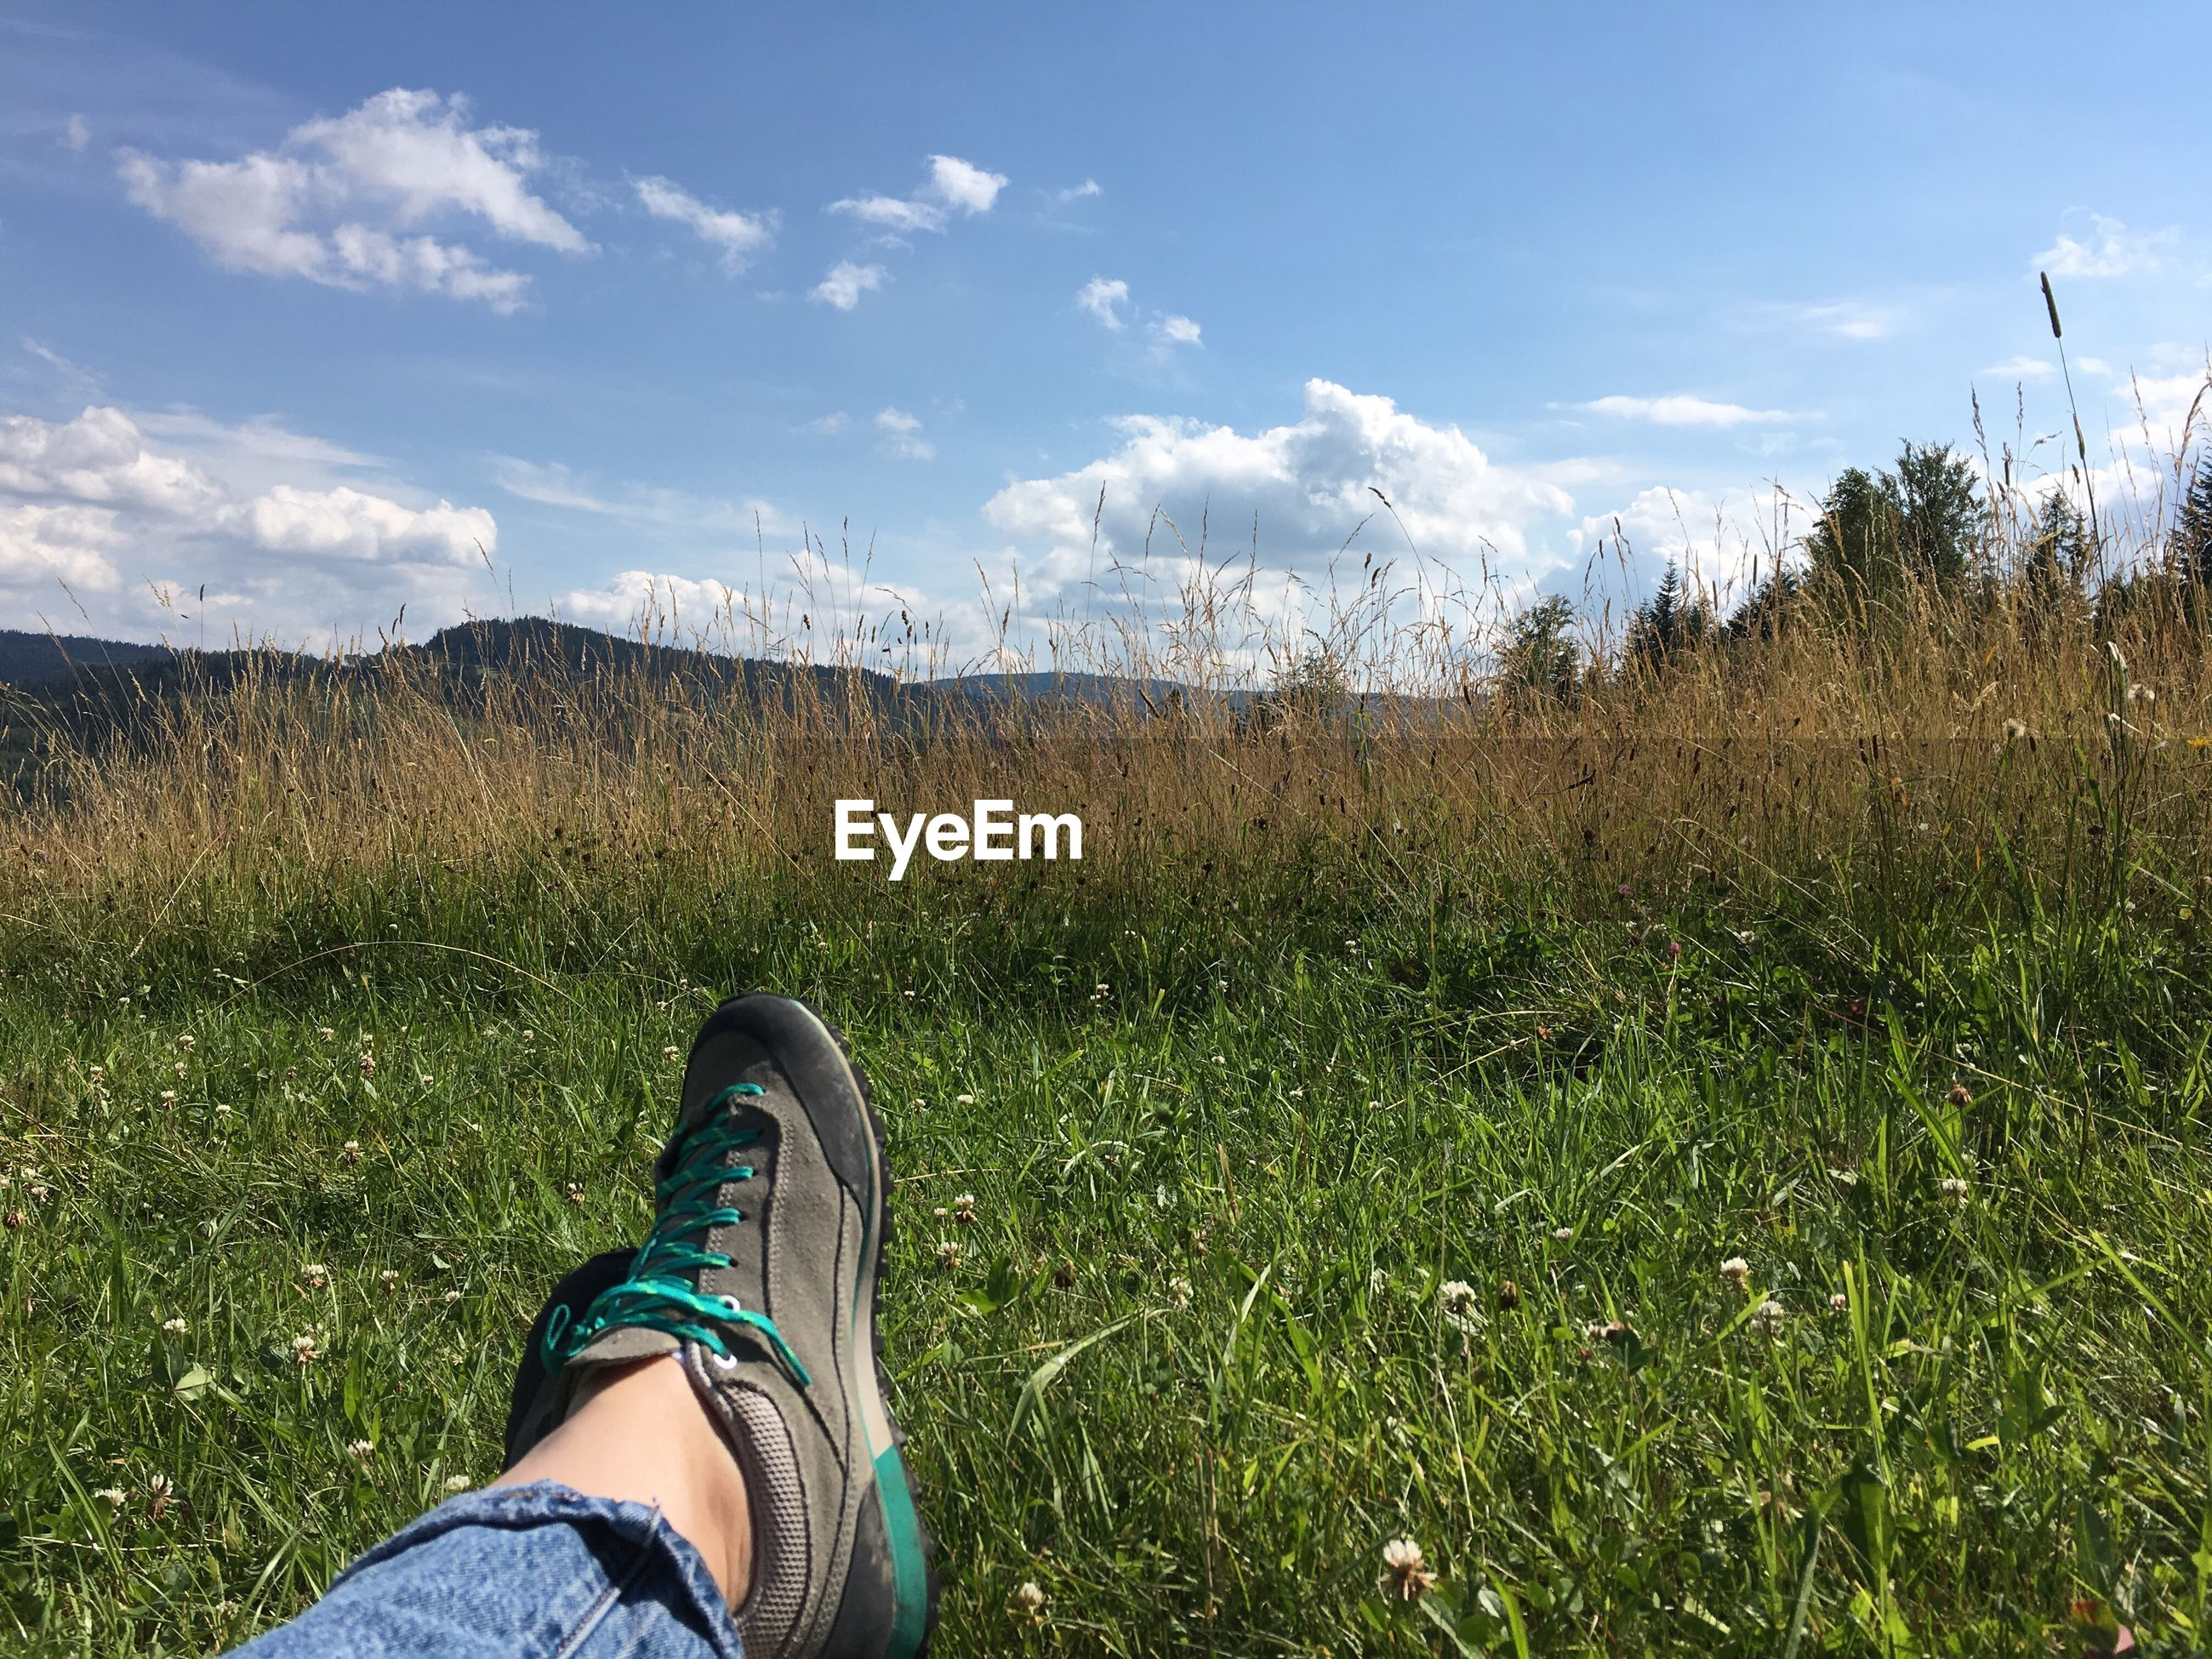 grass, one person, human leg, low section, personal perspective, cloud - sky, sky, field, shoe, growth, nature, day, standing, real people, outdoors, landscape, adventure, lifestyles, human body part, beauty in nature, scenics, people